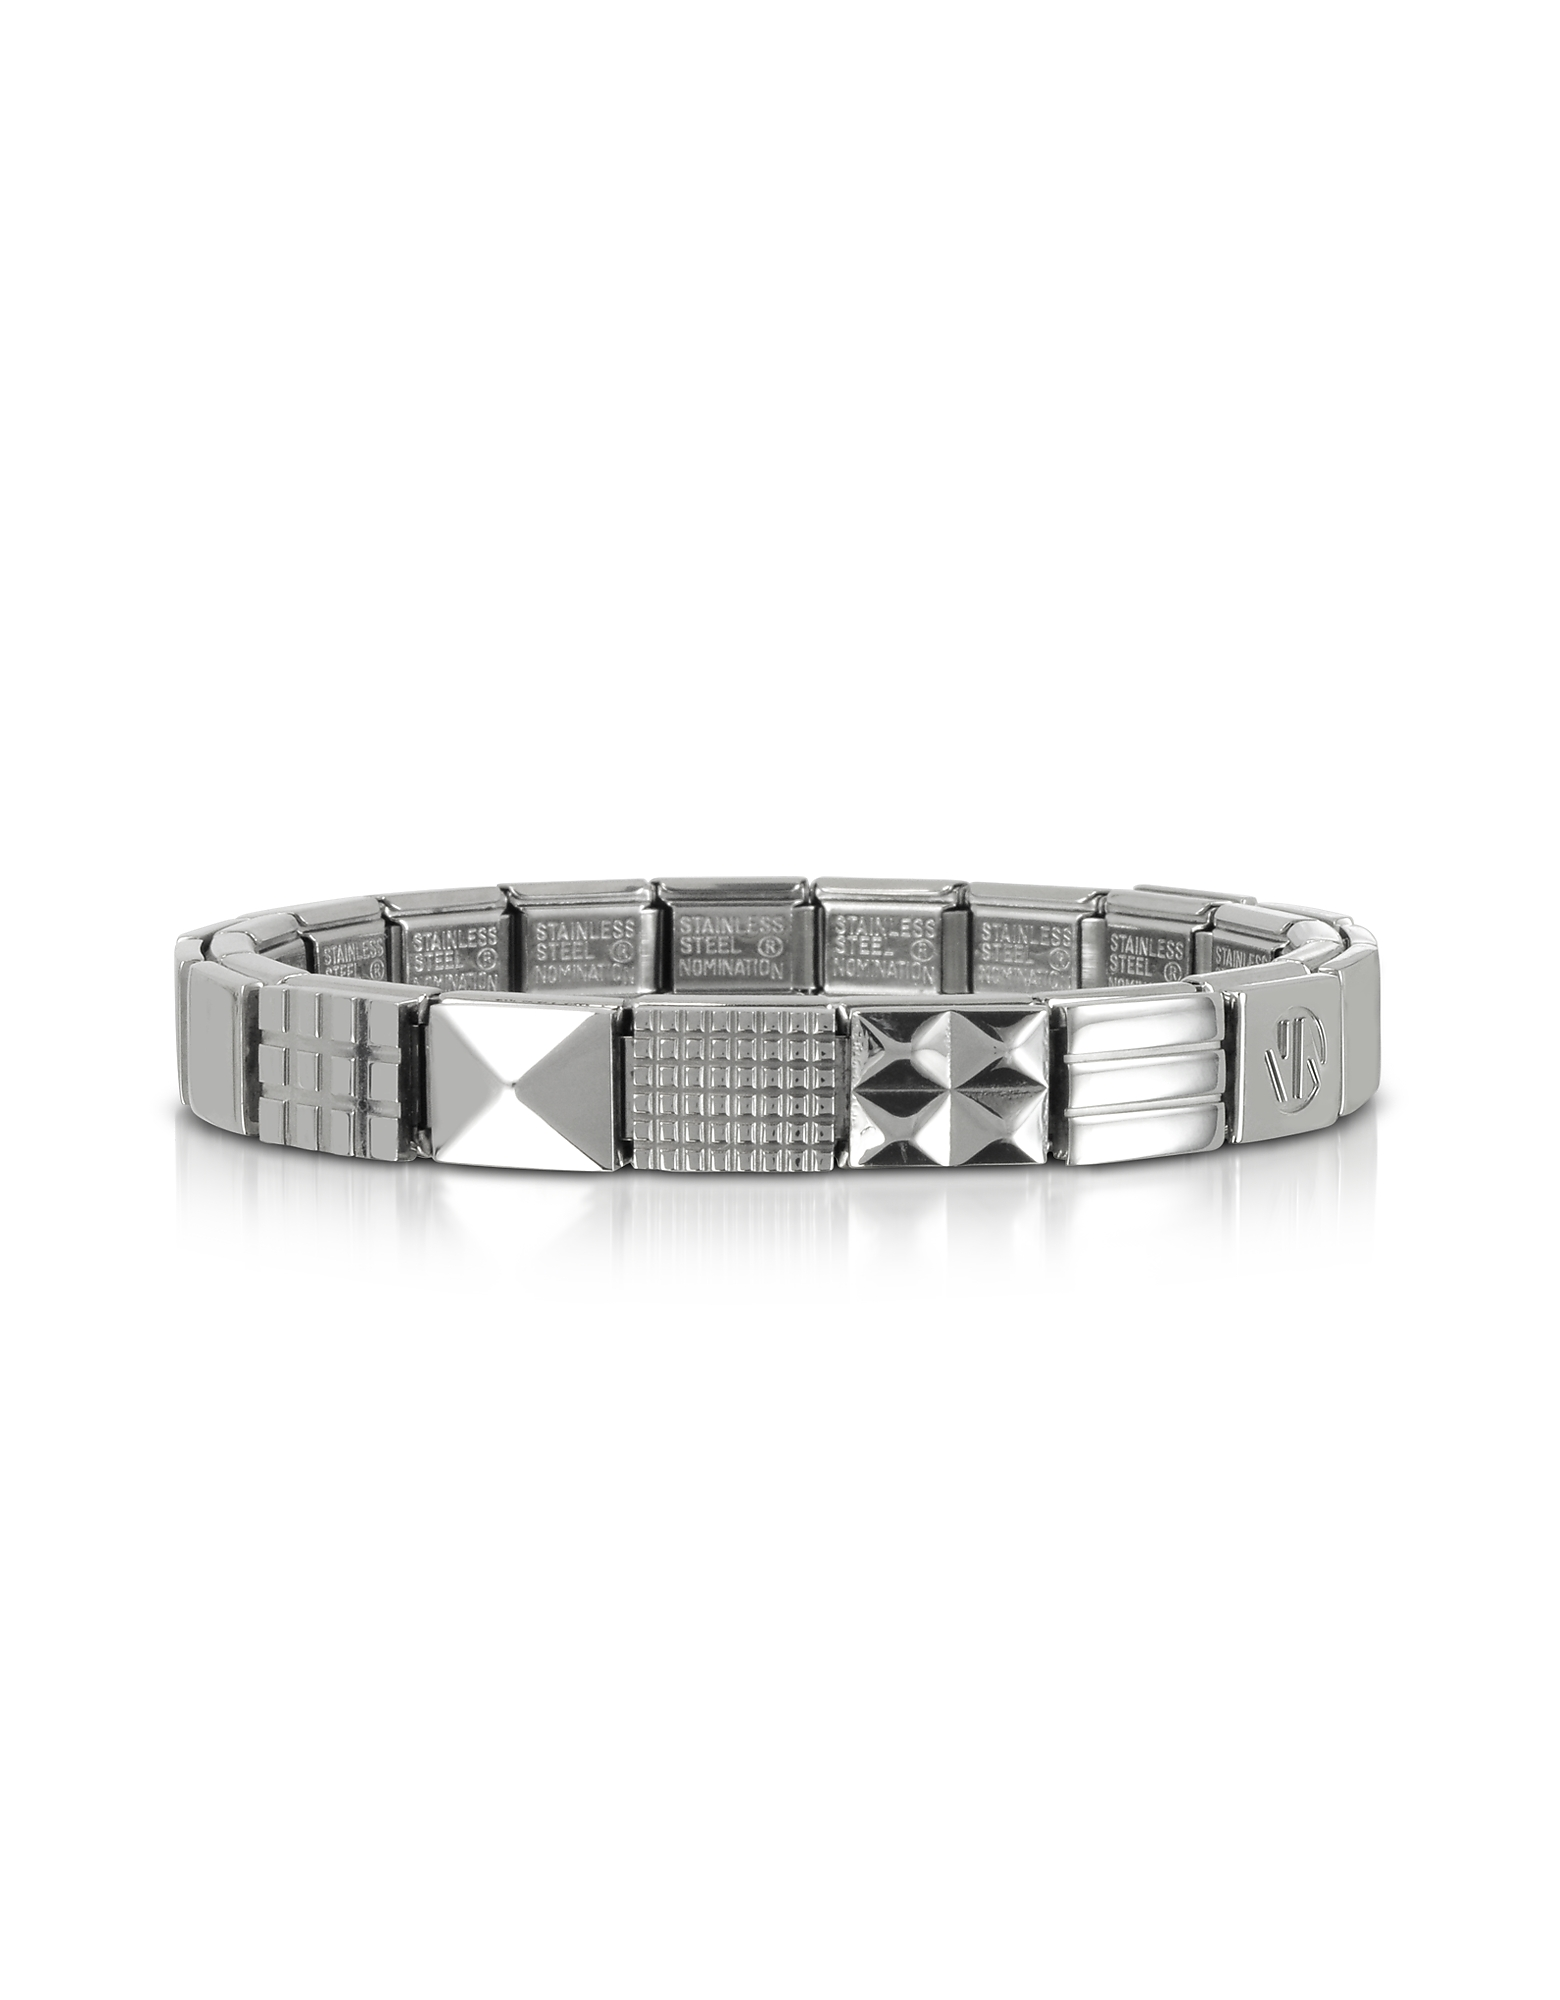 Nomination Men's Bracelets, Steel Ikons Geometric Studs Polished Stainless Steel Bracelet